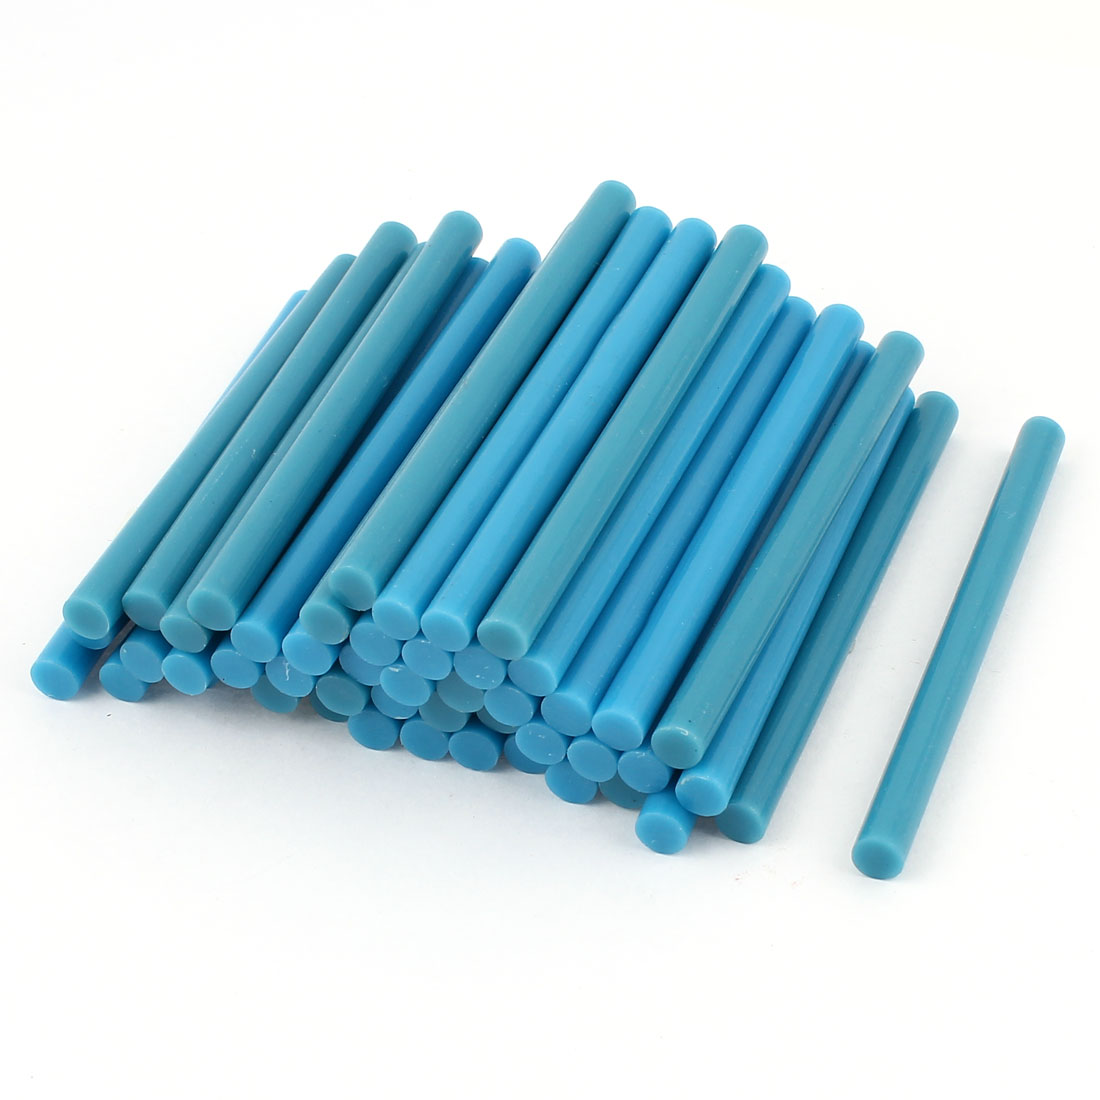 50 Pcs Blue Hot Melt Glue Gun Adhesive Sticks 7mm x 100mm